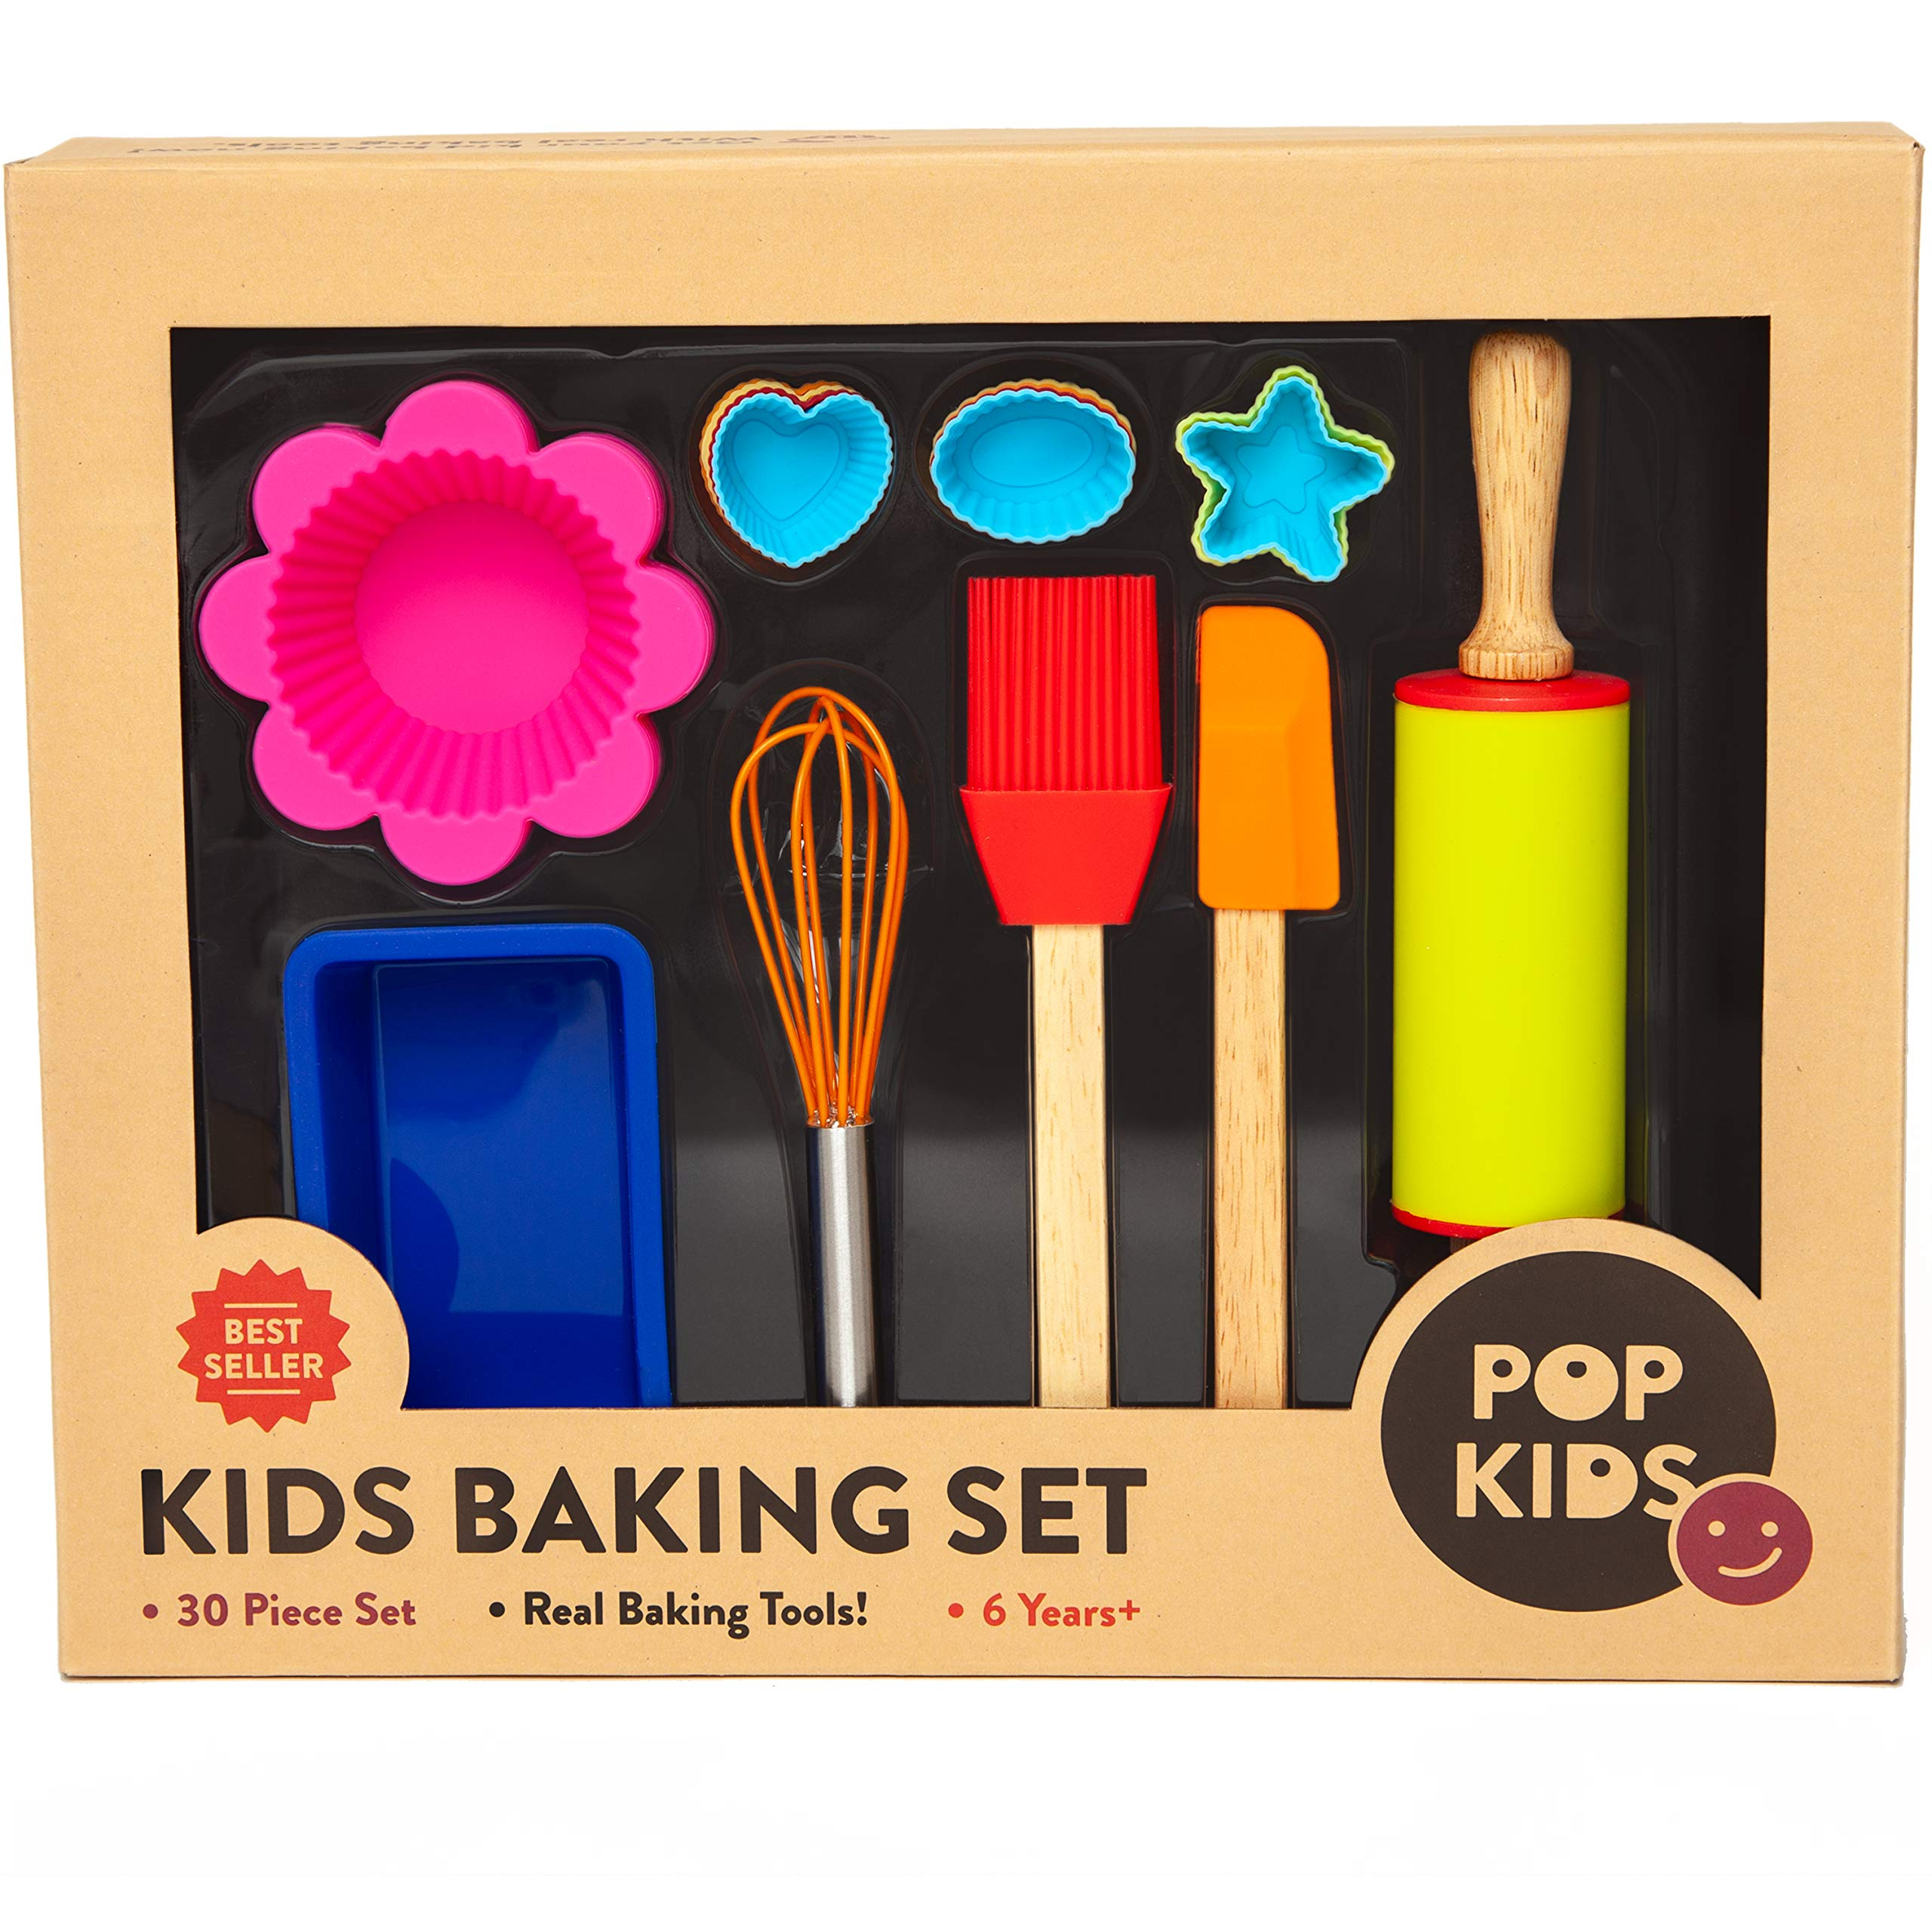 Pop Kid S 30 Piece Real Nonstick Bakeware And Cooking Set With Silicone Cupcake Molds Spatula Whisk Rolling Pin Cake Pan For Learning Real Cooking And Baking Tools Great Gift For Curious Beginners Buy